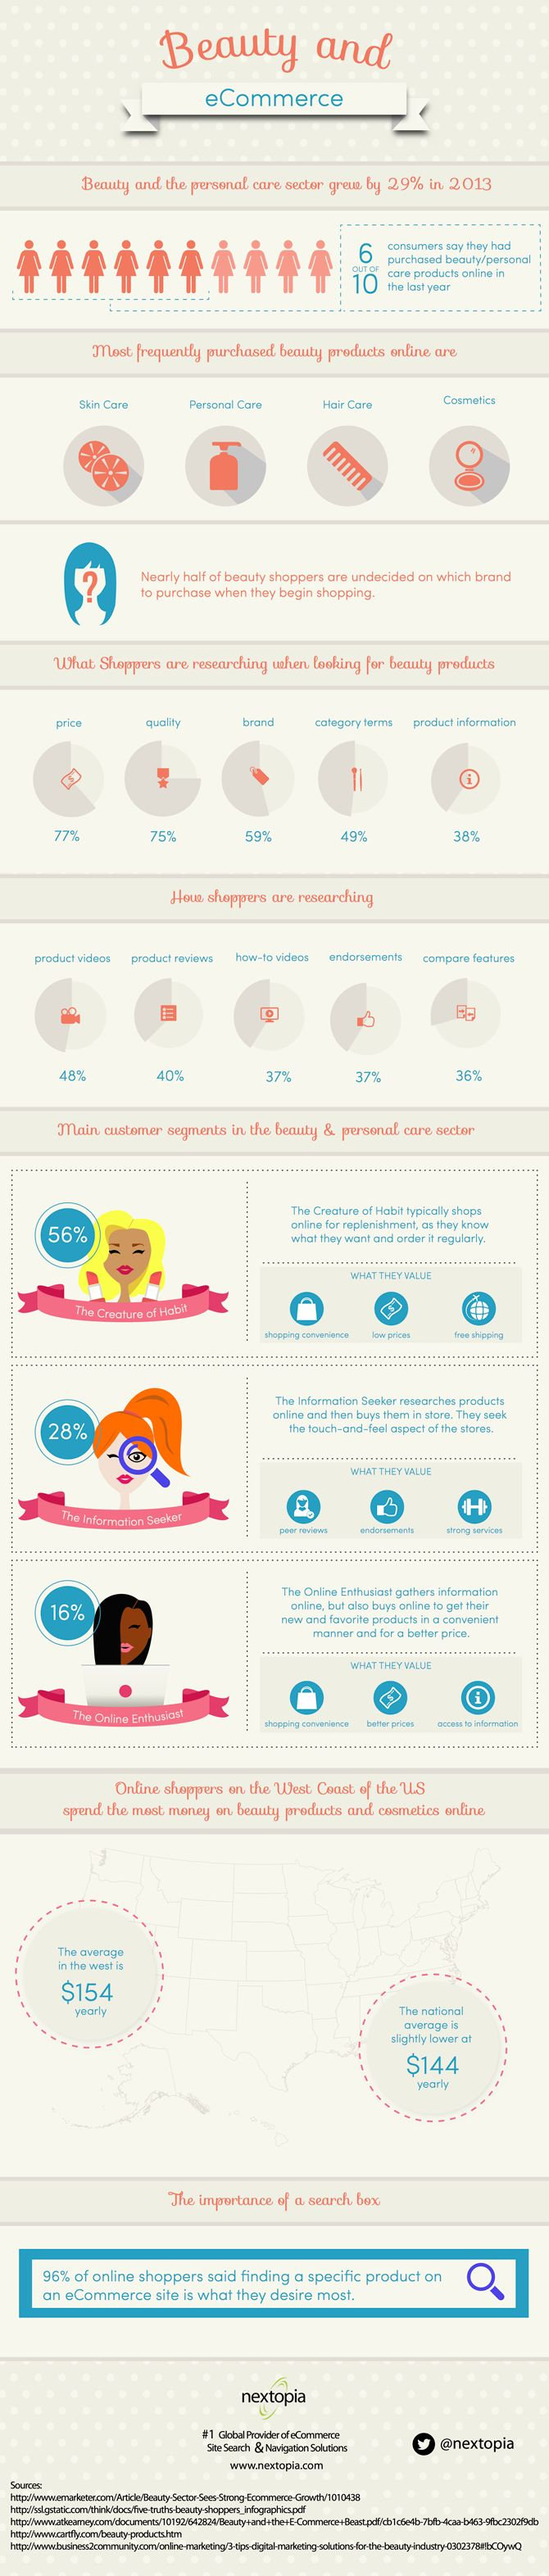 Our newest infographic depicts how the beauty and personal care industry is growing online! ‪#‎ecommerce‬ ‪#‎infographic‬ ‪#‎beauty‬ ‪#‎blog‬